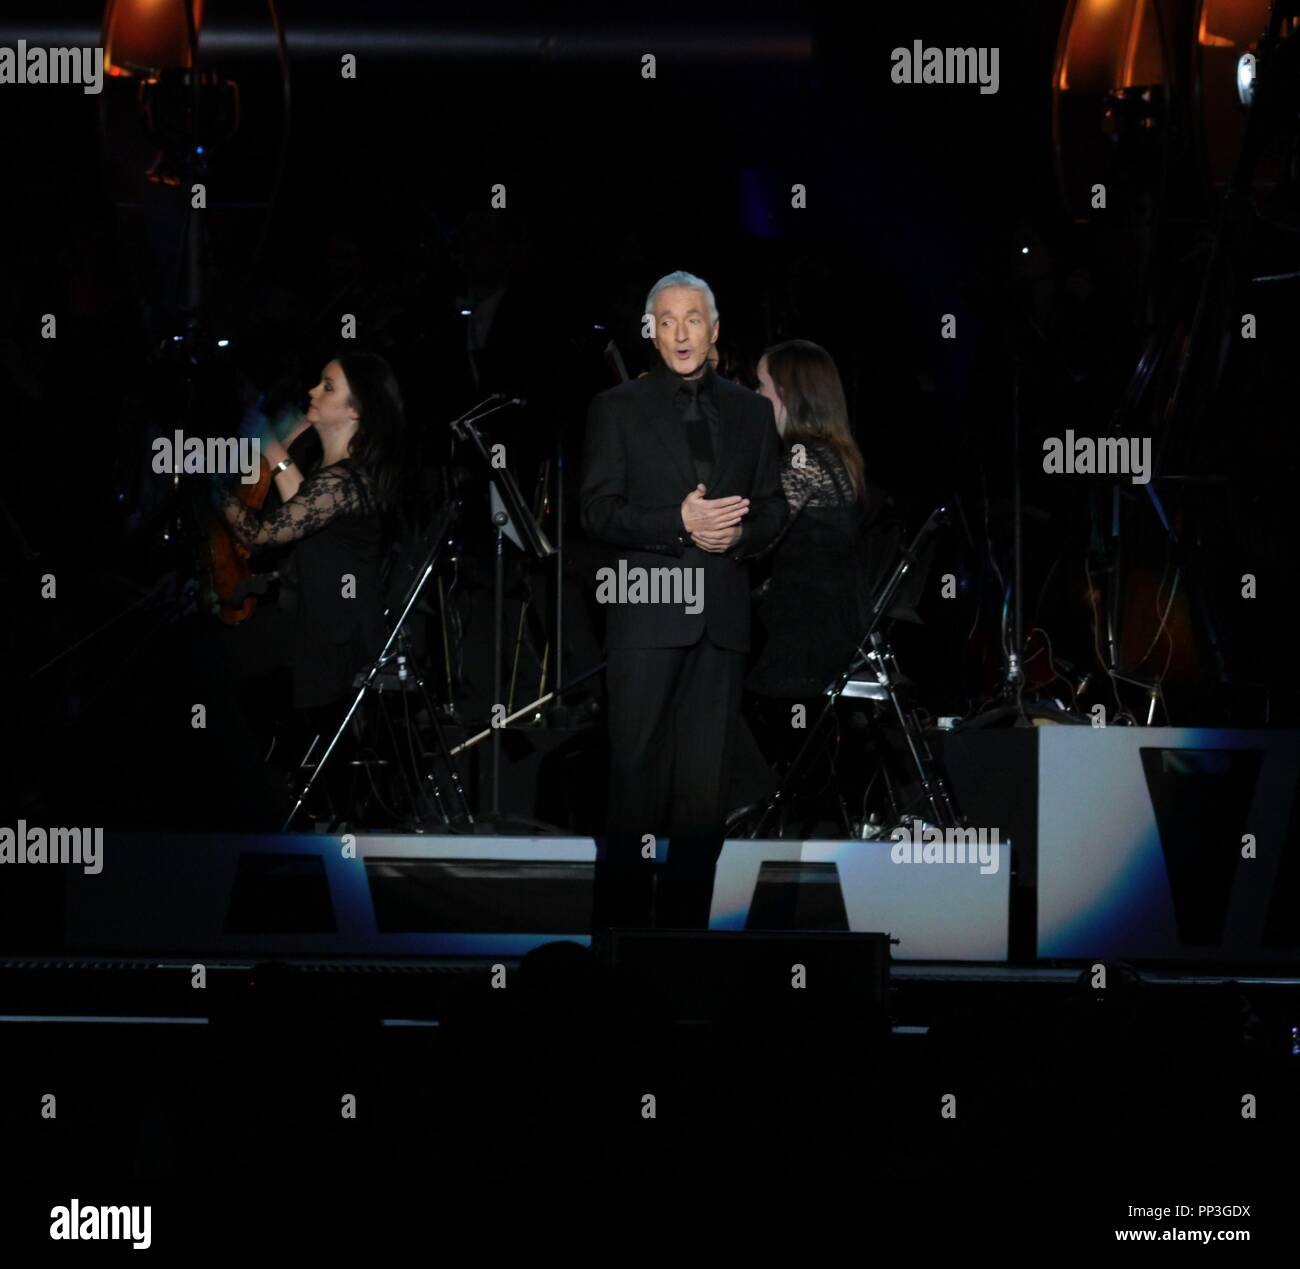 Liverpool, uk Anthony Daniels narrates Star Wars Concert in Liverpool credit Ian Fairbrother/Alamy stock photos - Stock Image